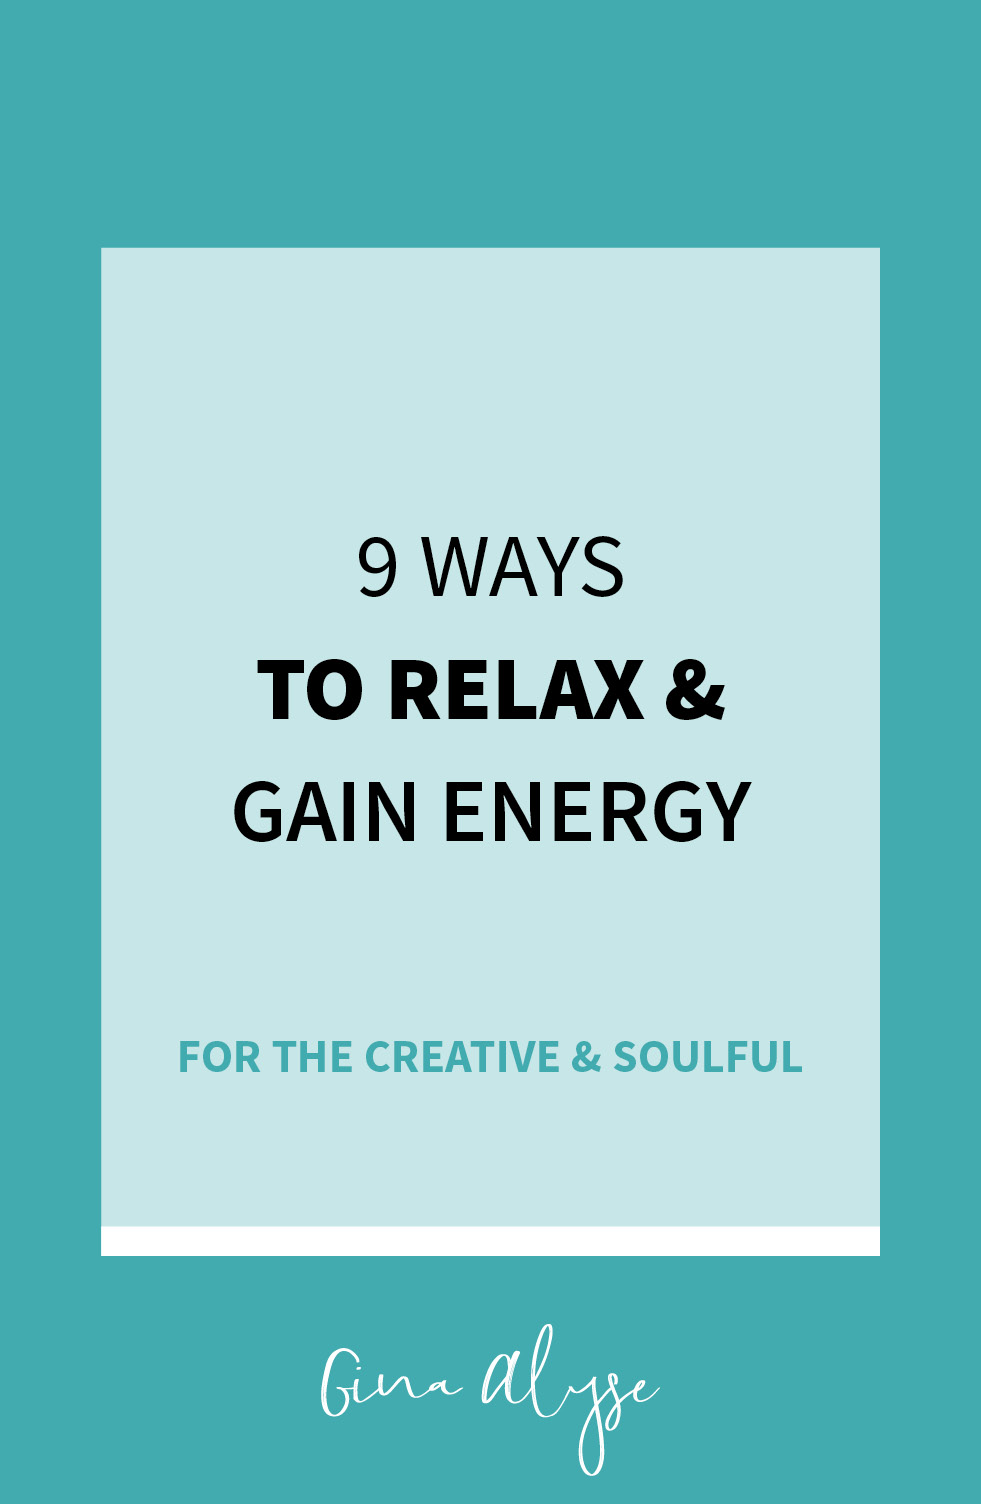 9 Ways to Relax & Regain Energy